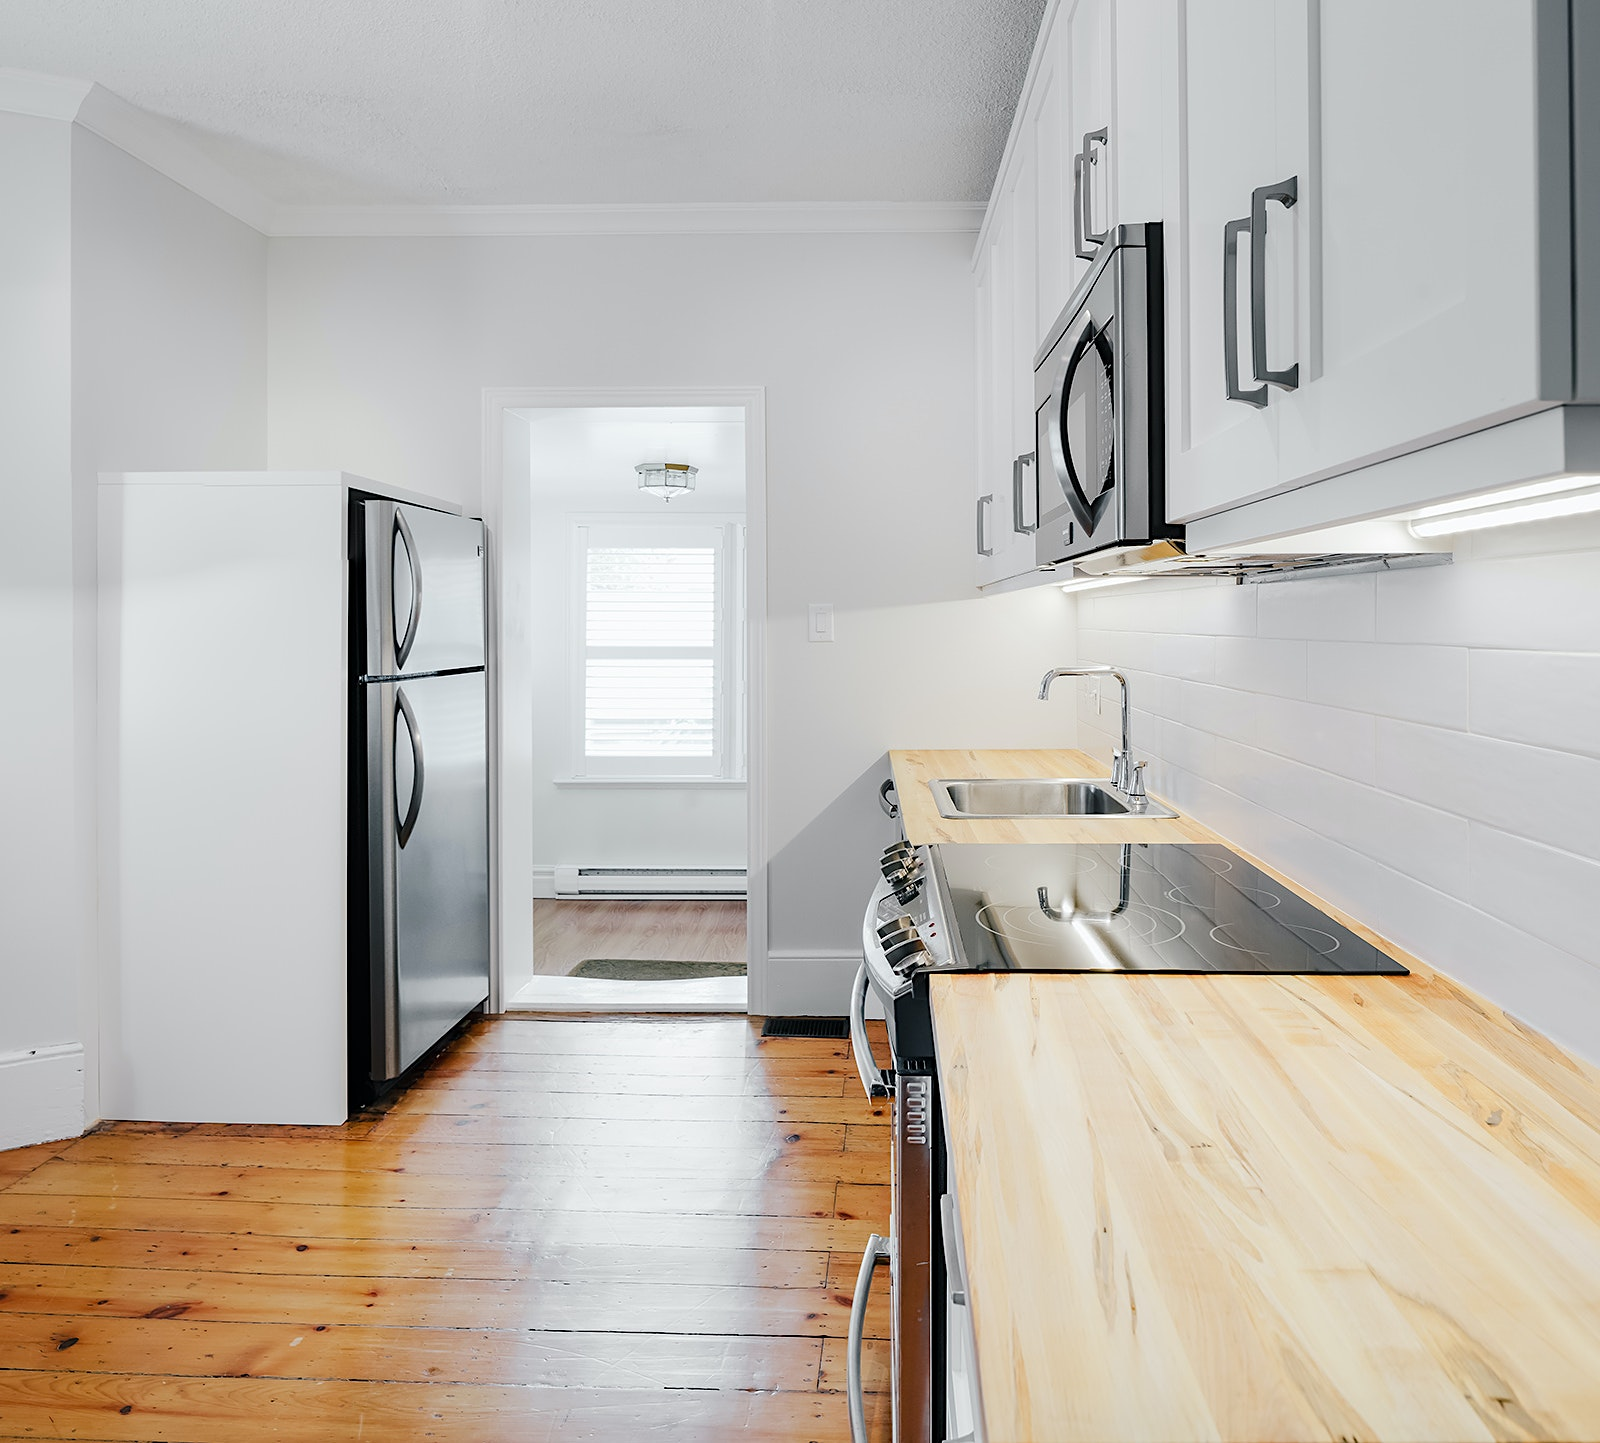 Kitchen image - real estate photography by london ontario photographer scott webb